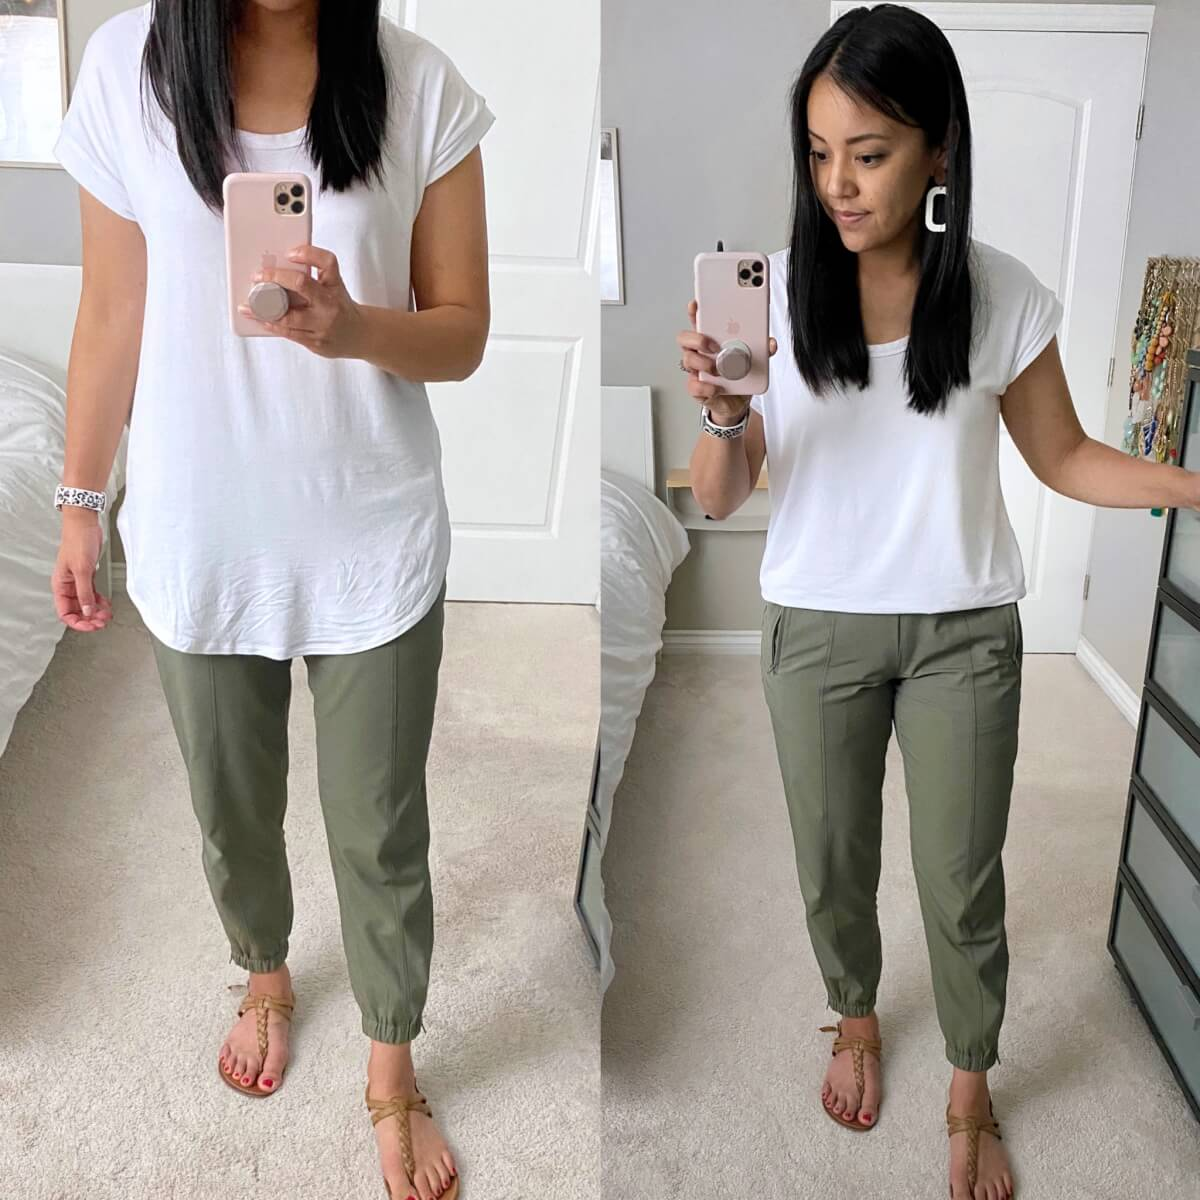 Casual Outfit: Old Navy white luxe tunic tee + olive joggers + nude t-strap sandals + white earrings